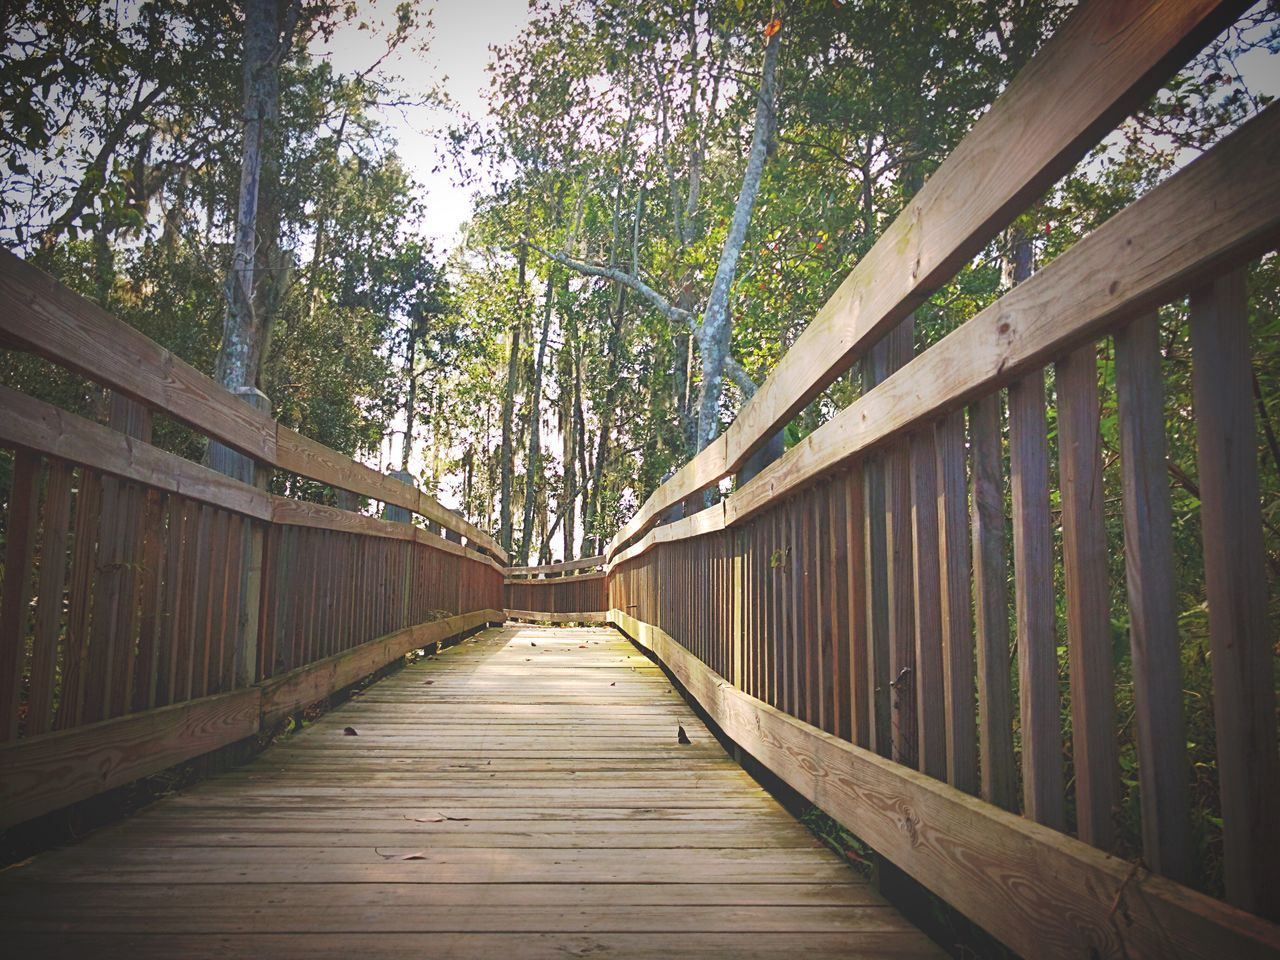 tree, the way forward, wood - material, day, outdoors, no people, railing, bamboo - plant, green color, wood paneling, nature, footbridge, forest, built structure, bamboo grove